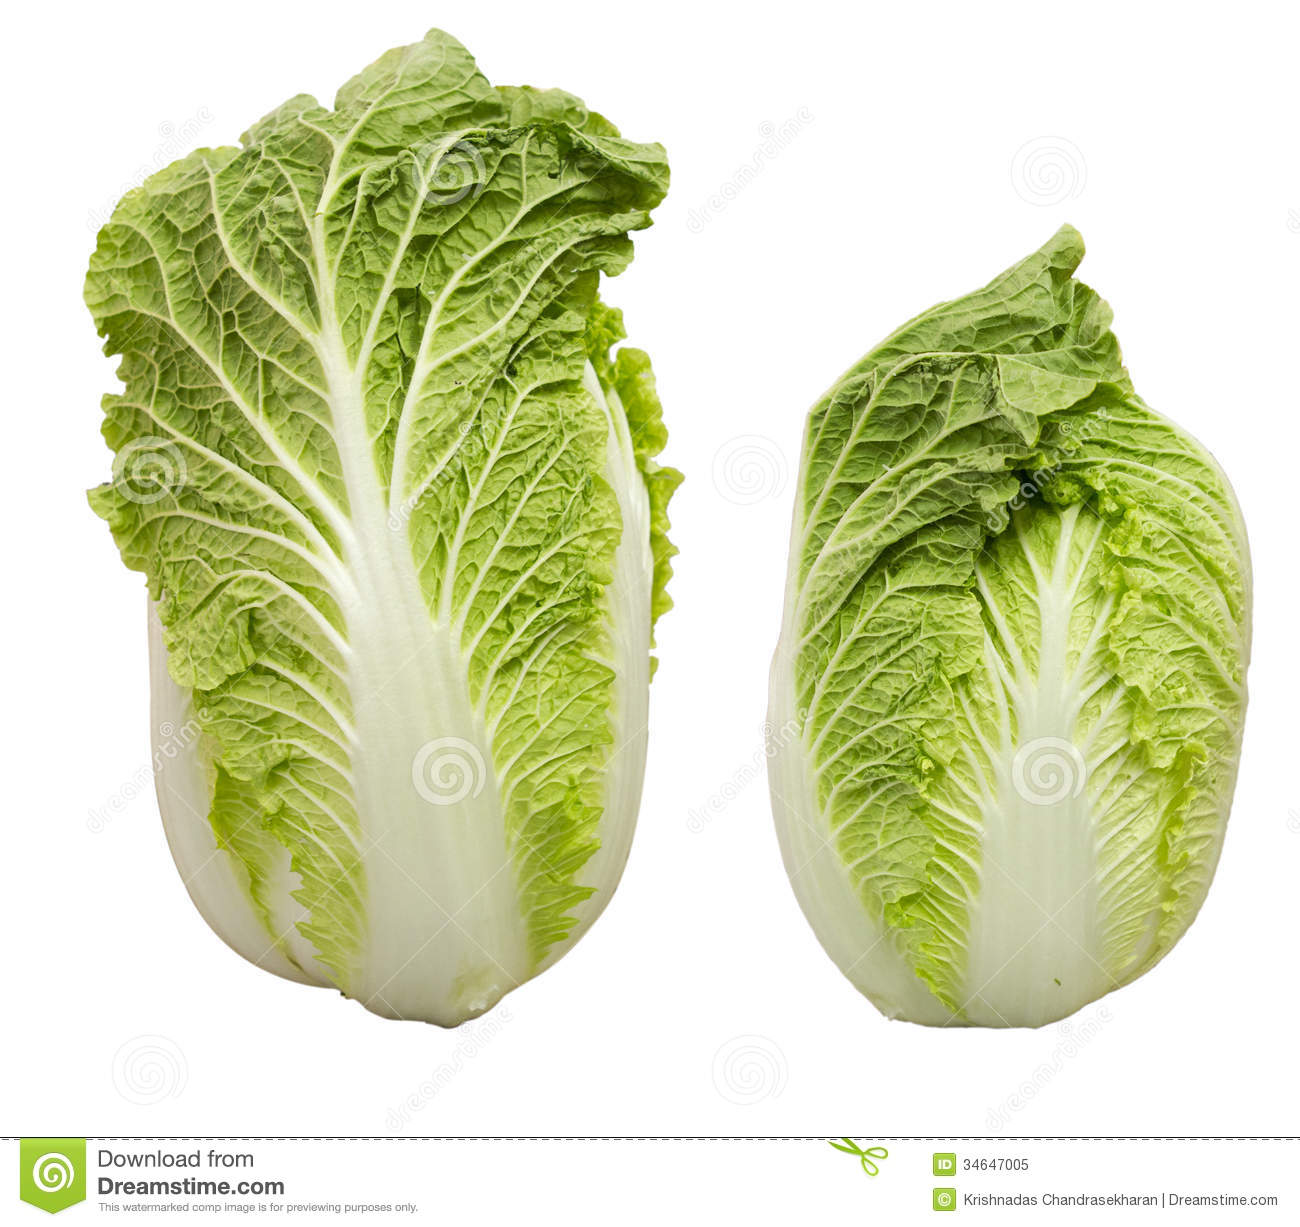 chineese cabbage royalty free stock photo image 34647005 hot cup of coffee clipart hot cup of coffee clipart